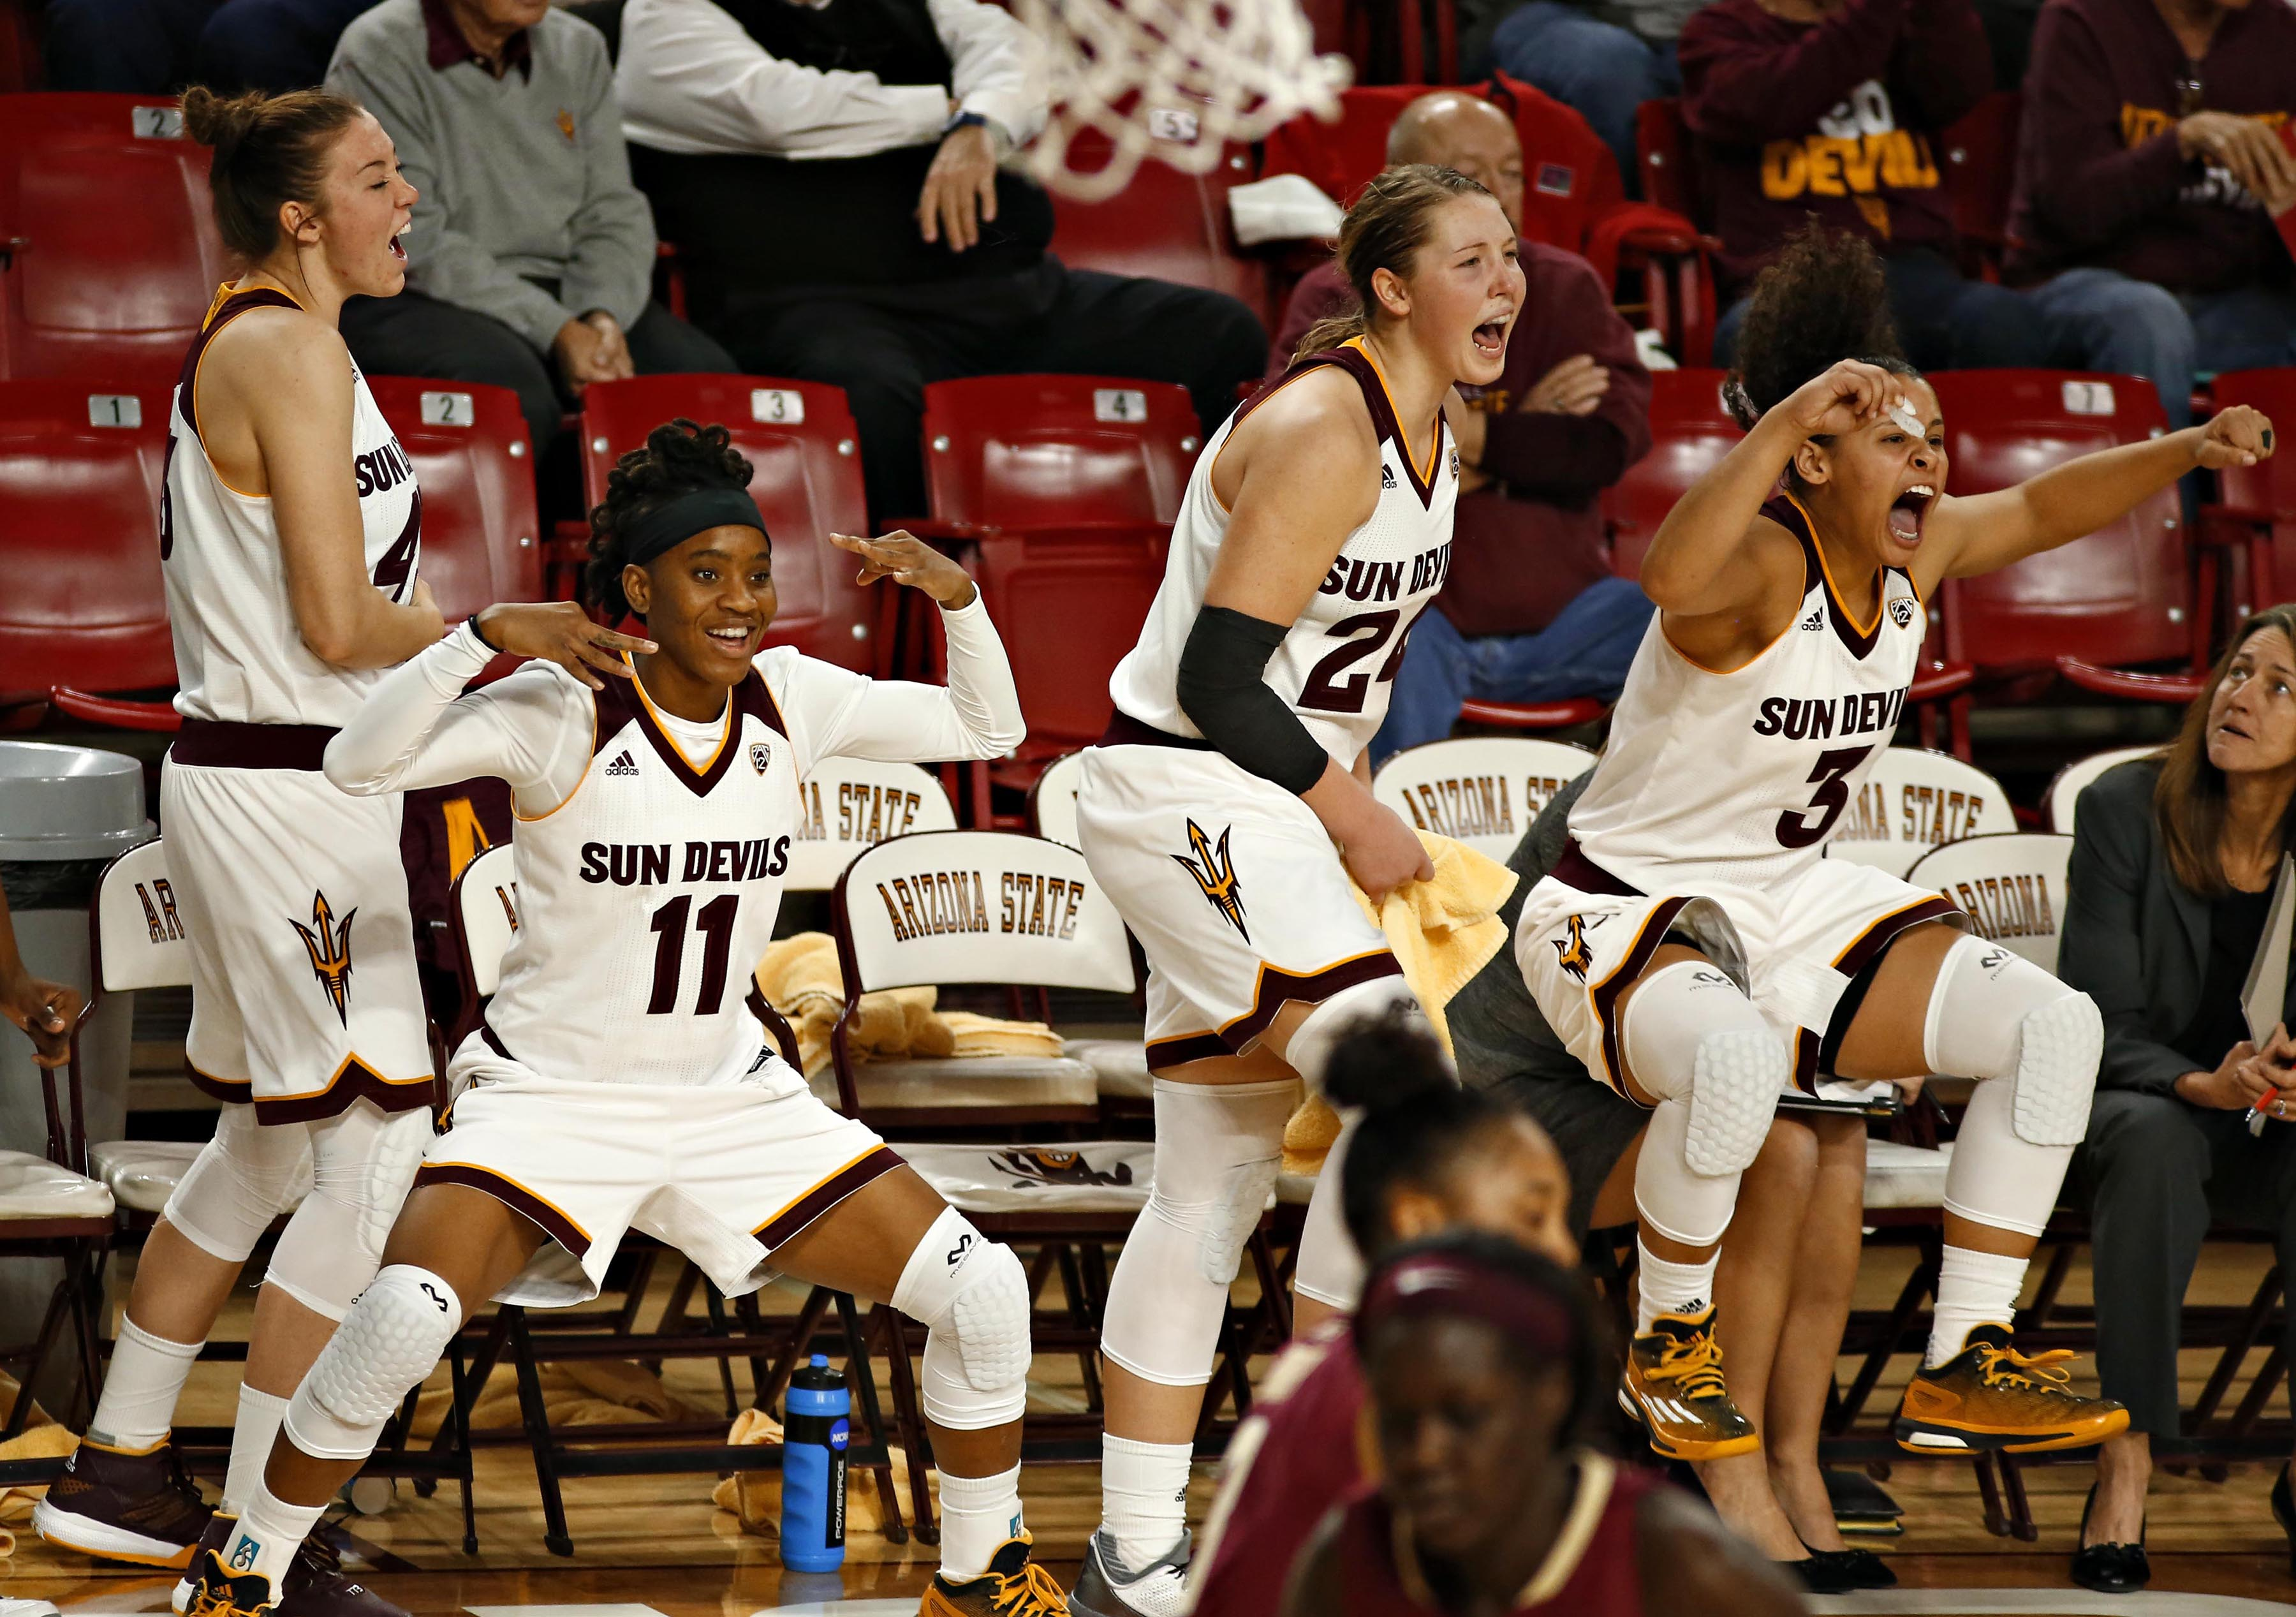 The Arizona State reacts late in the second half of an NCAA college basketball game against Florida State, Monday, Dec. 21, 2015, in Tempe, Ariz. (John Samora/The Arizona Republic via AP)  MARICOPA COUNTY OUT; MAGAZINES OUT; NO SALES; MANDATORY CREDIT